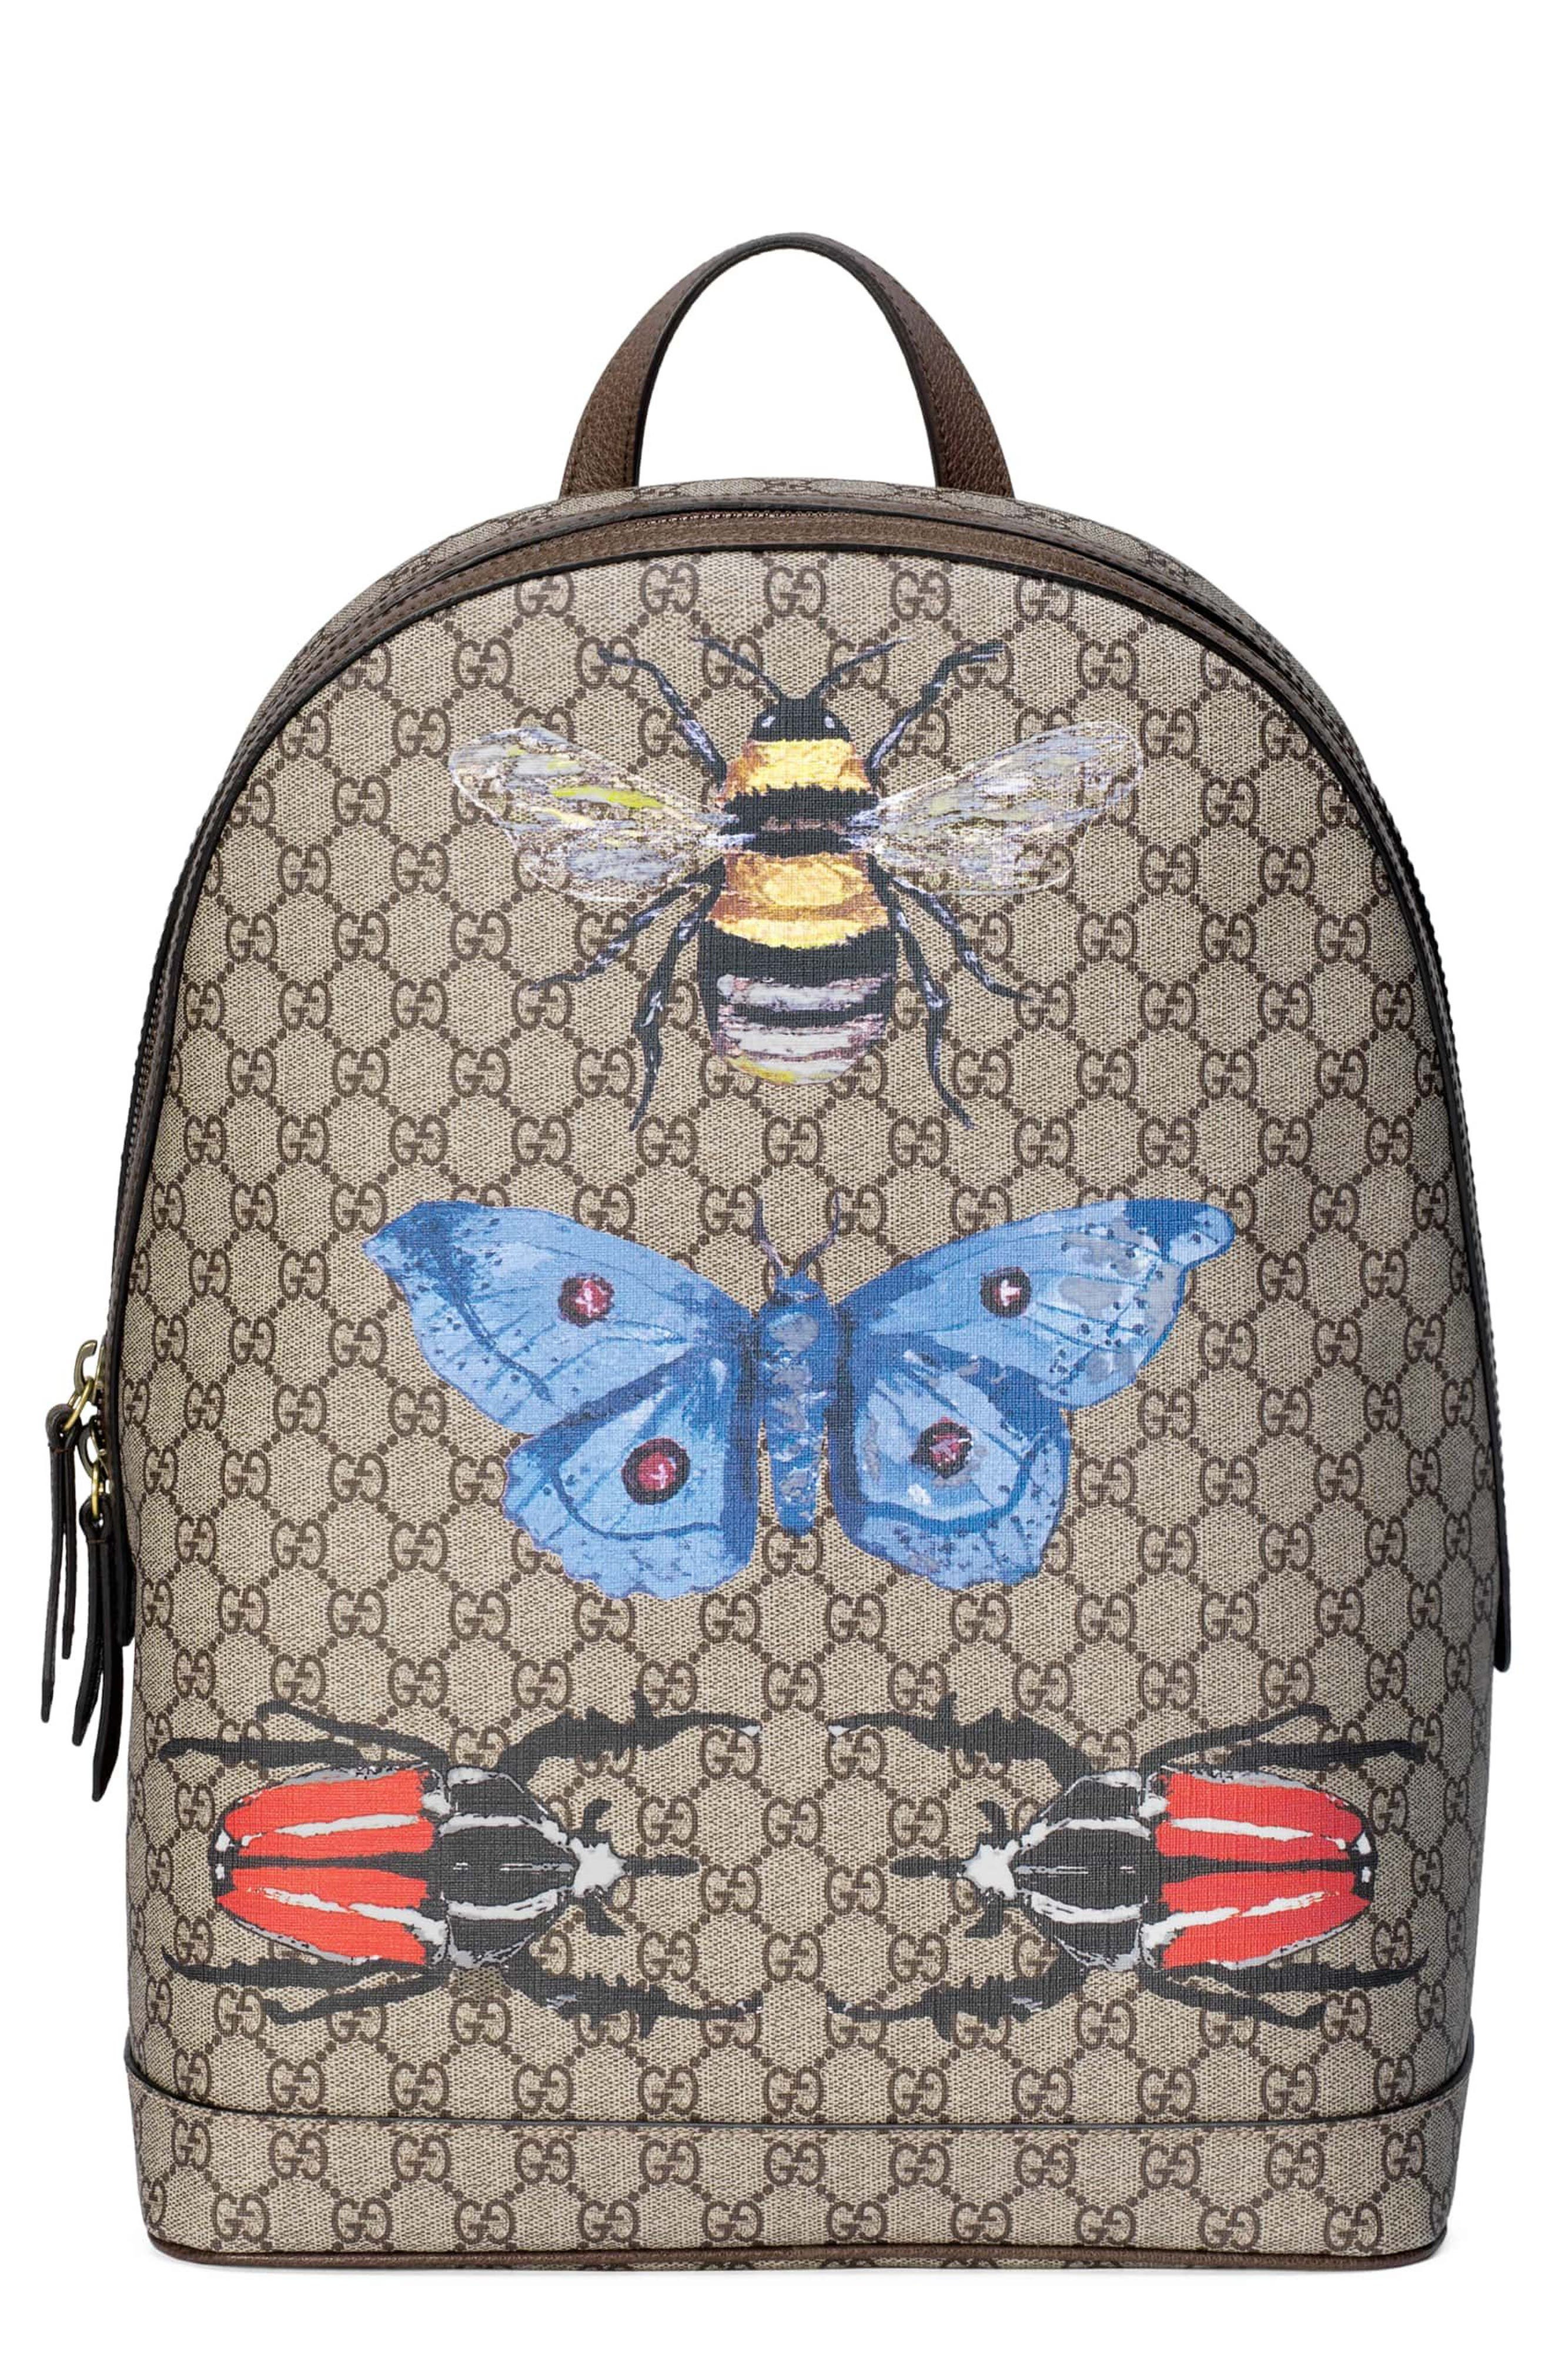 Gucci Insect Print GG Supreme Canvas Backpack